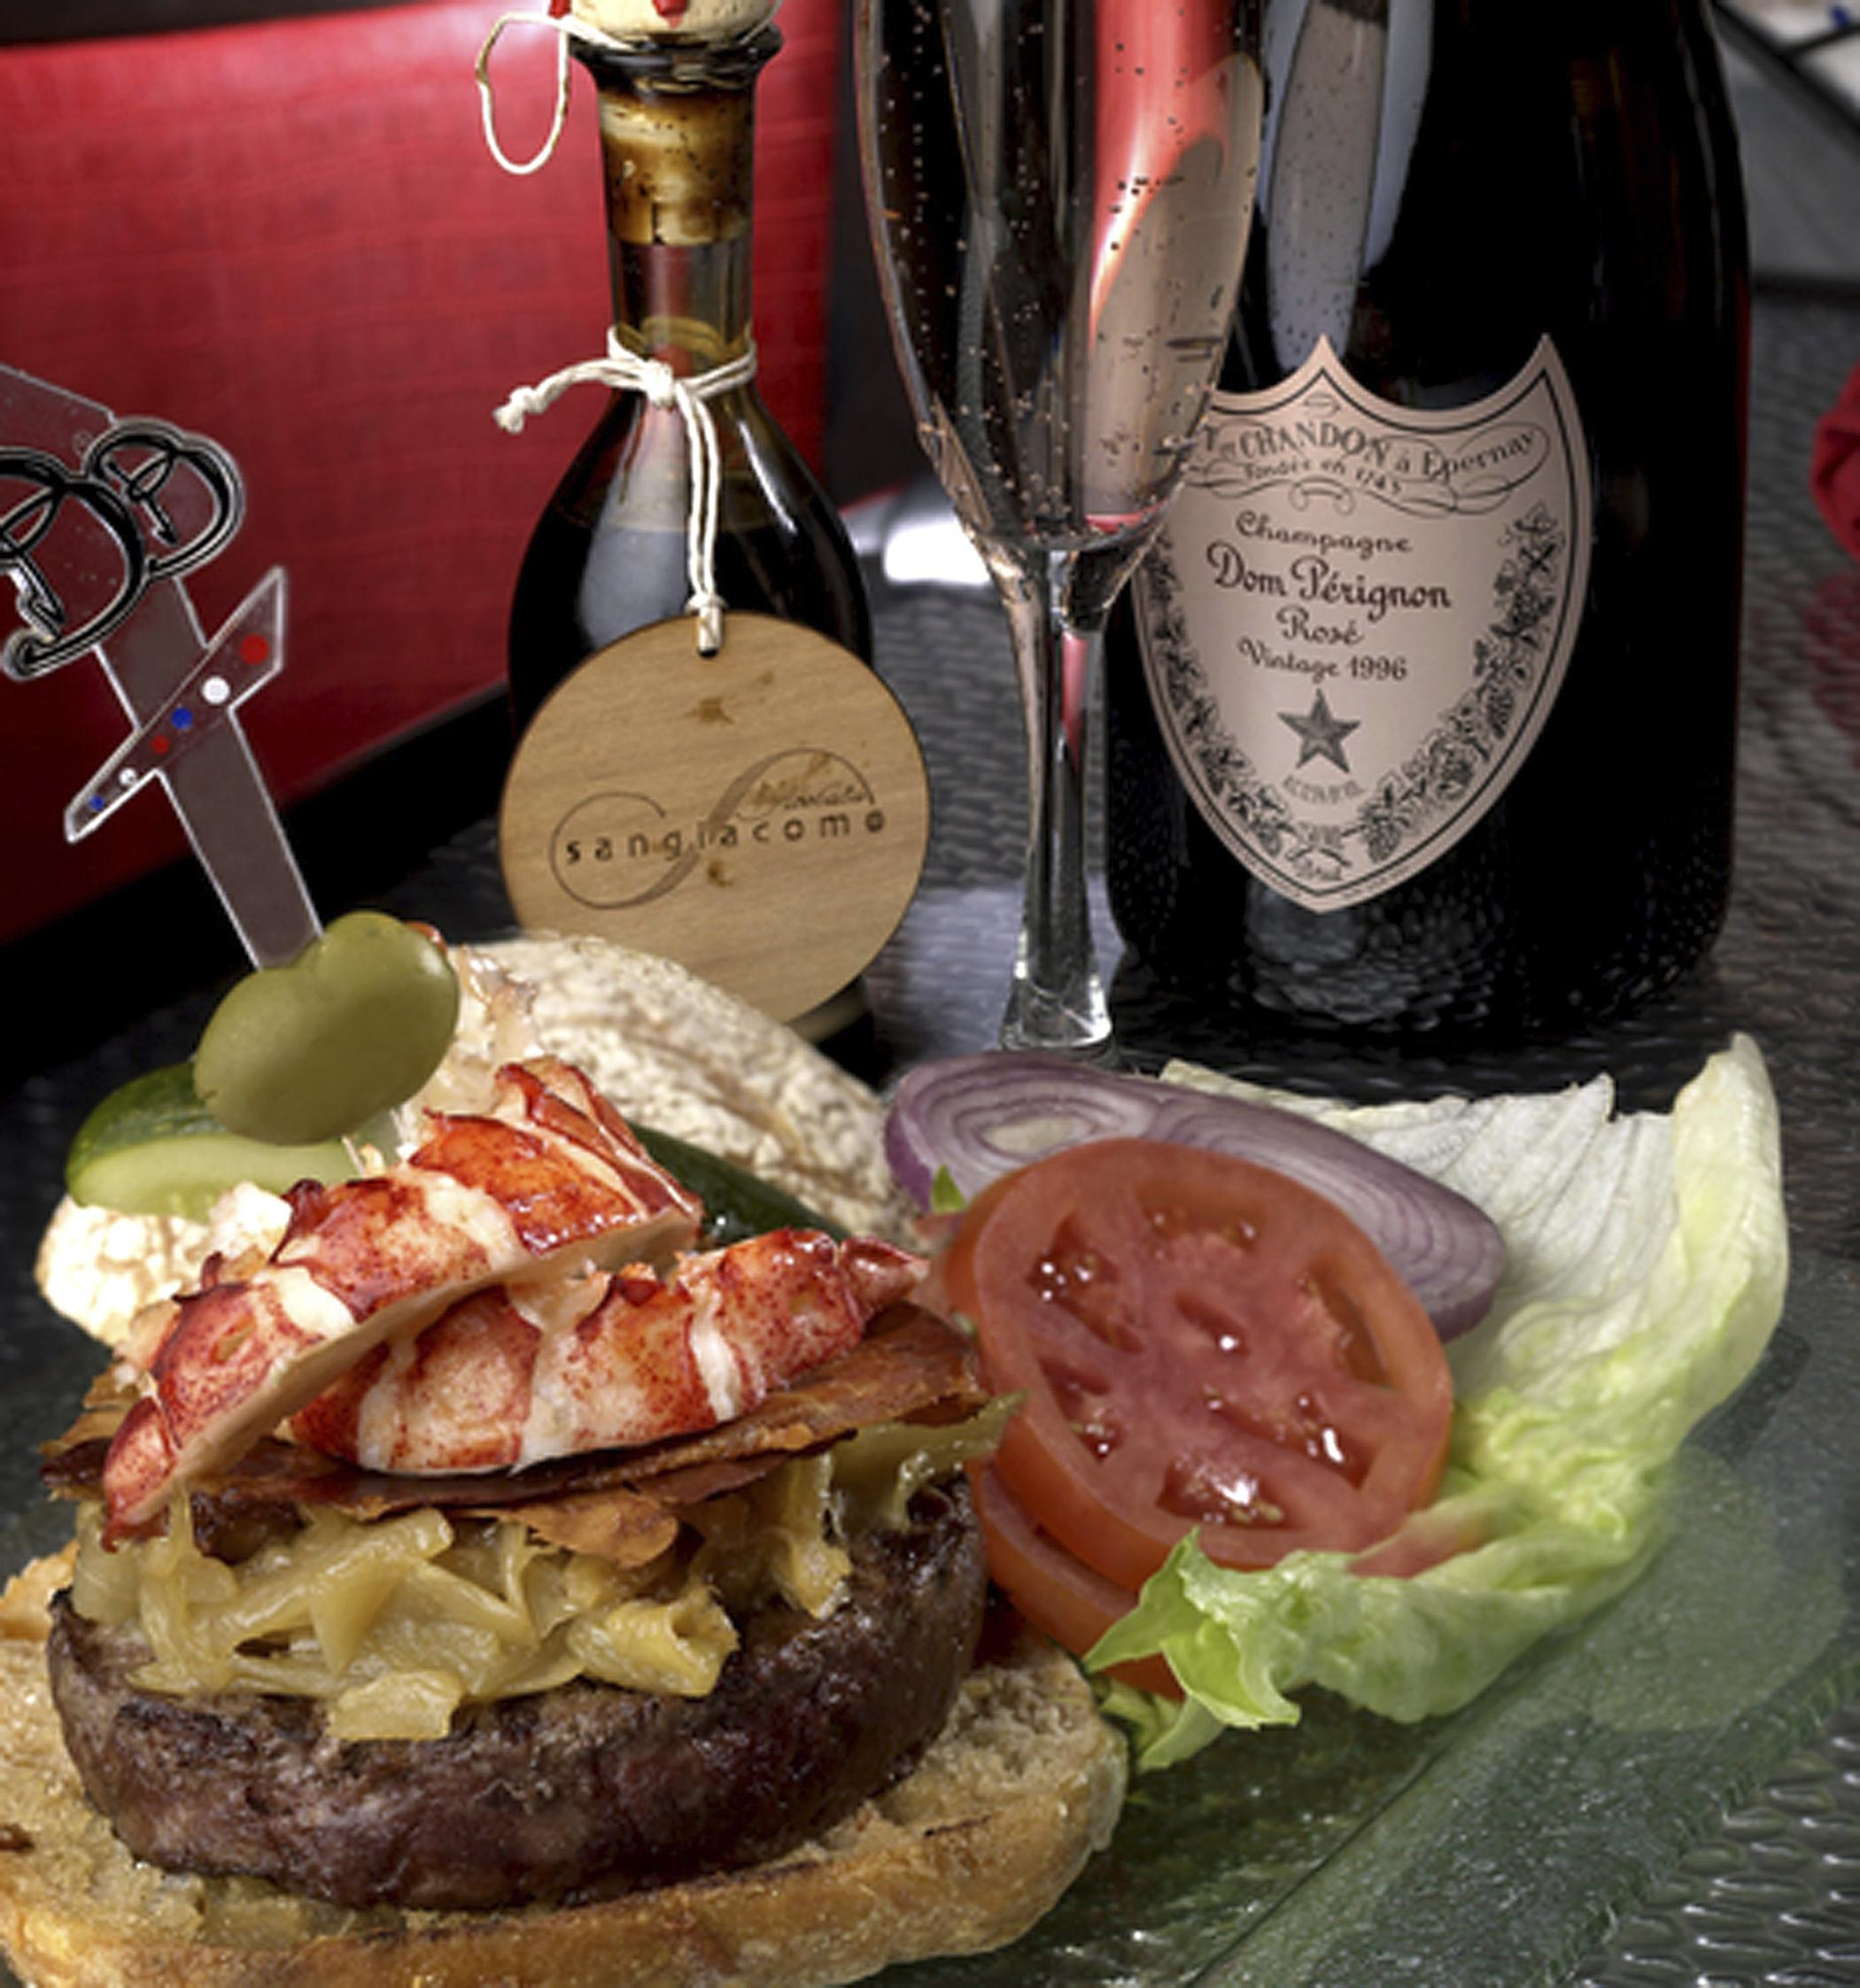 777 Burger ($777) - Paris, Las Vegas